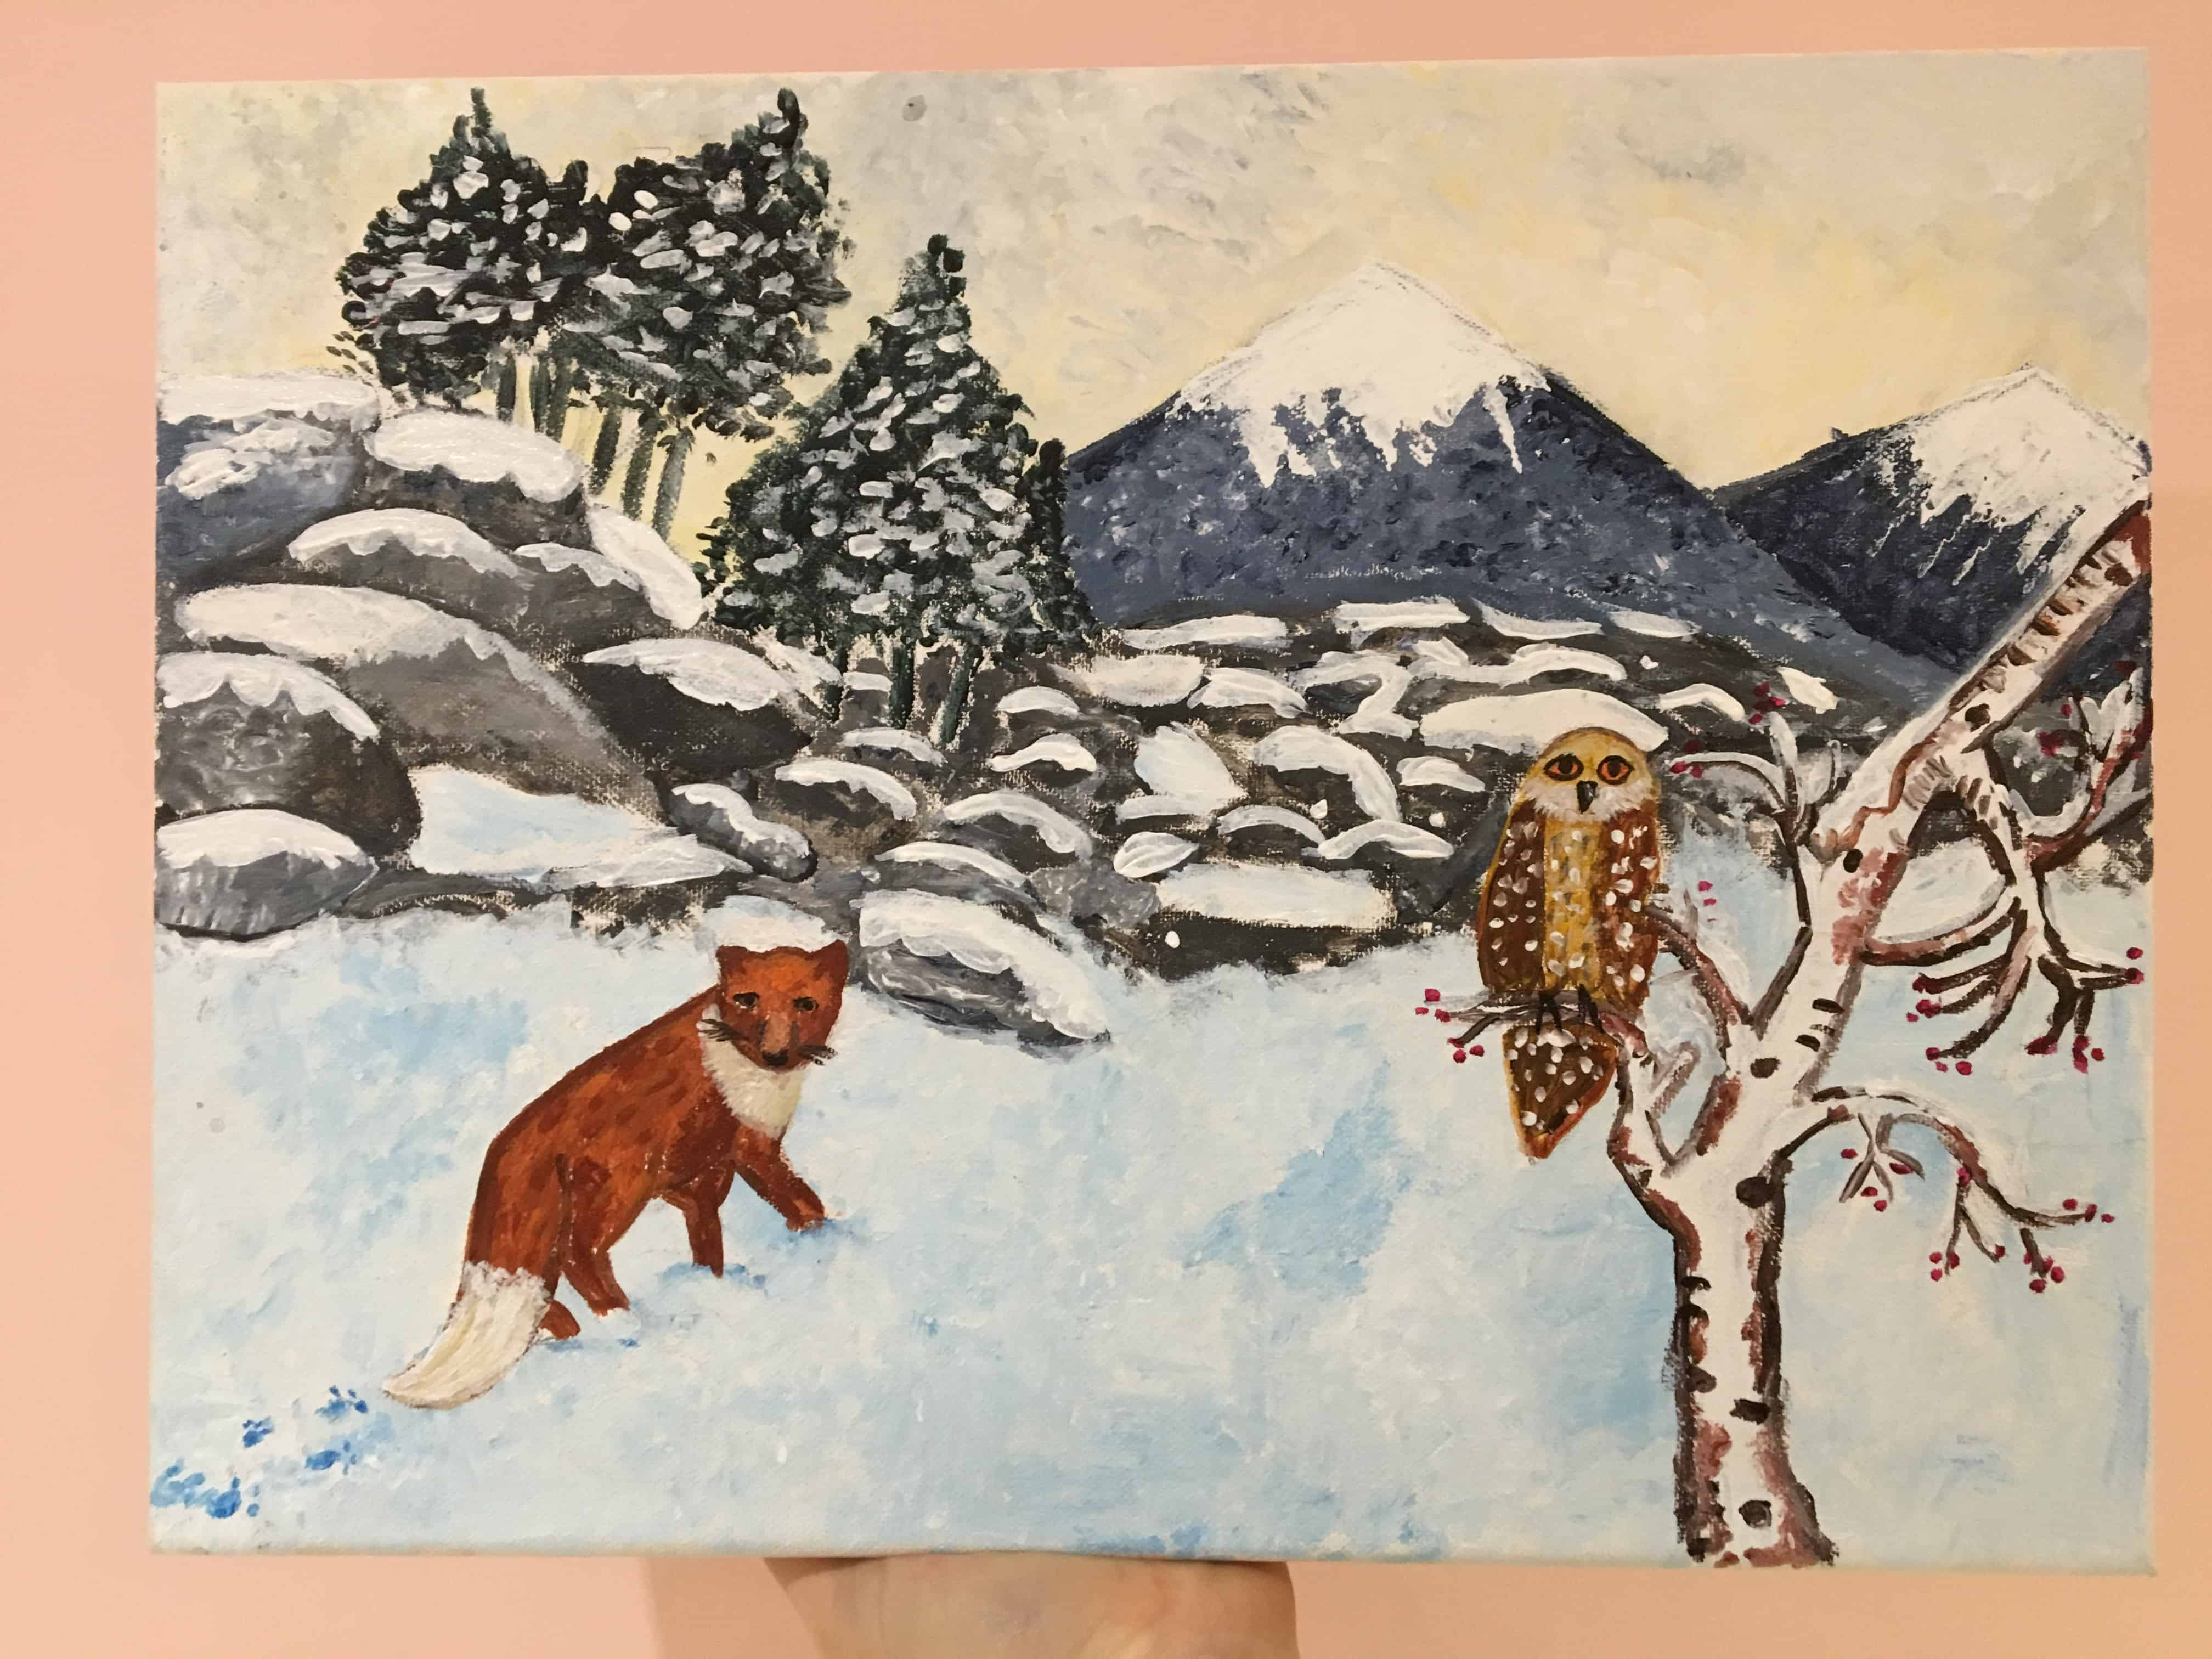 Winter painting by a 9 years old child